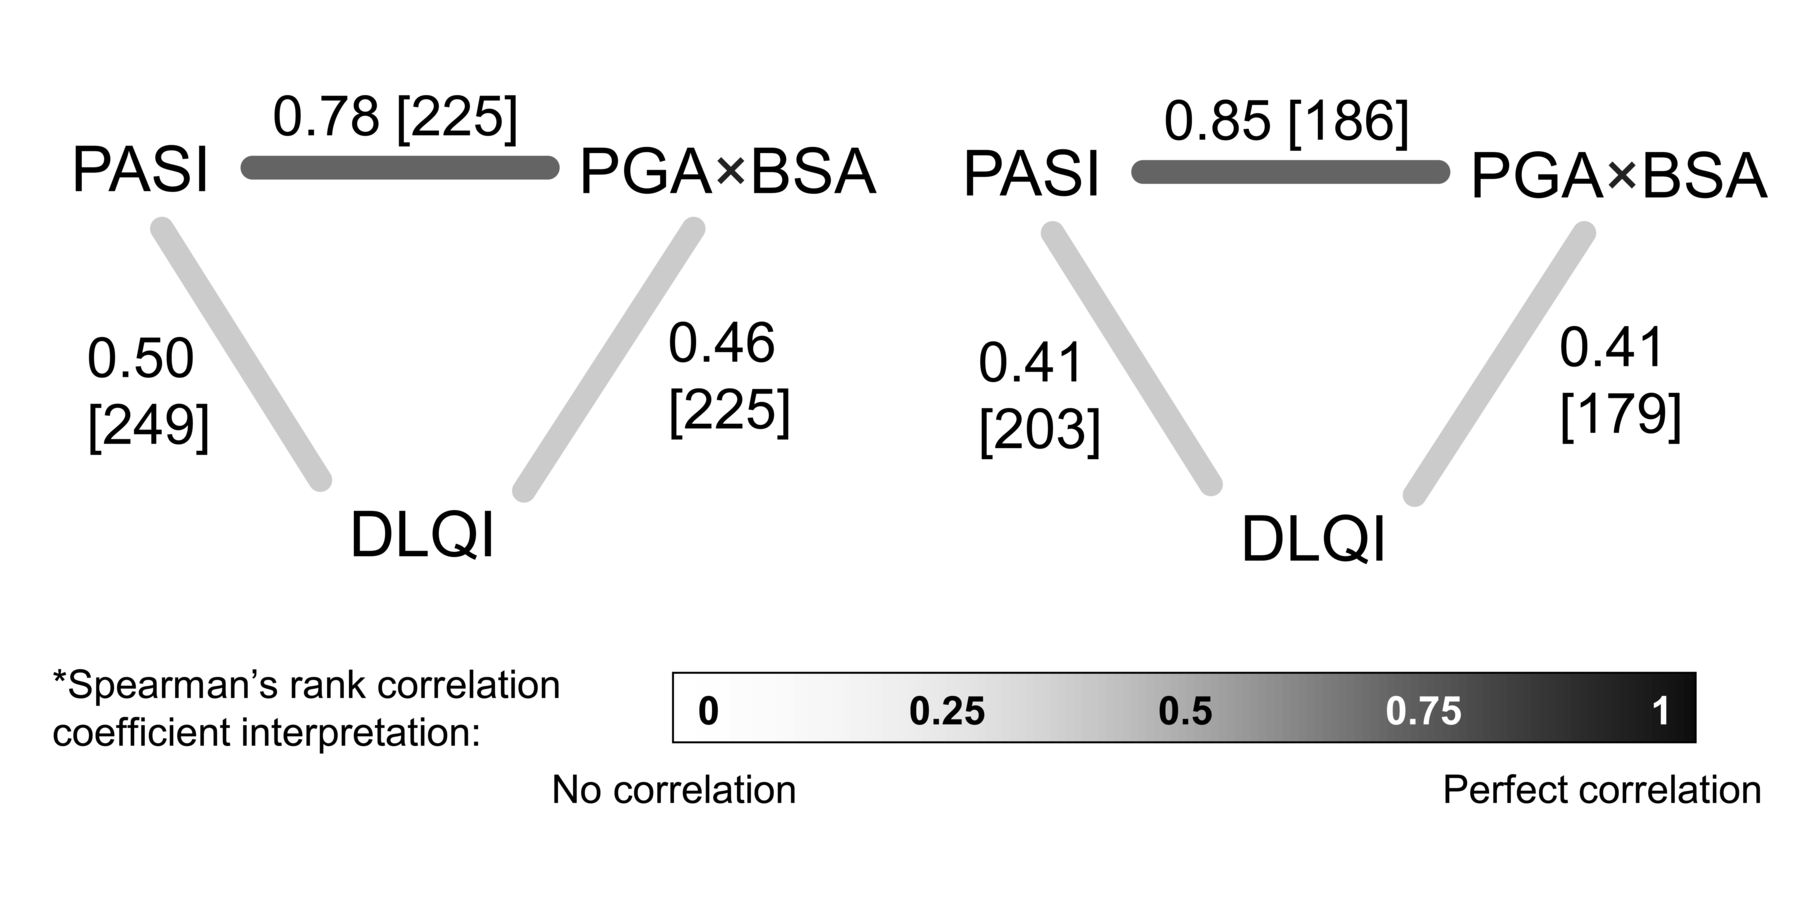 PGA×BSA: A Measure of Psoriasis Severity Tested in Patients with